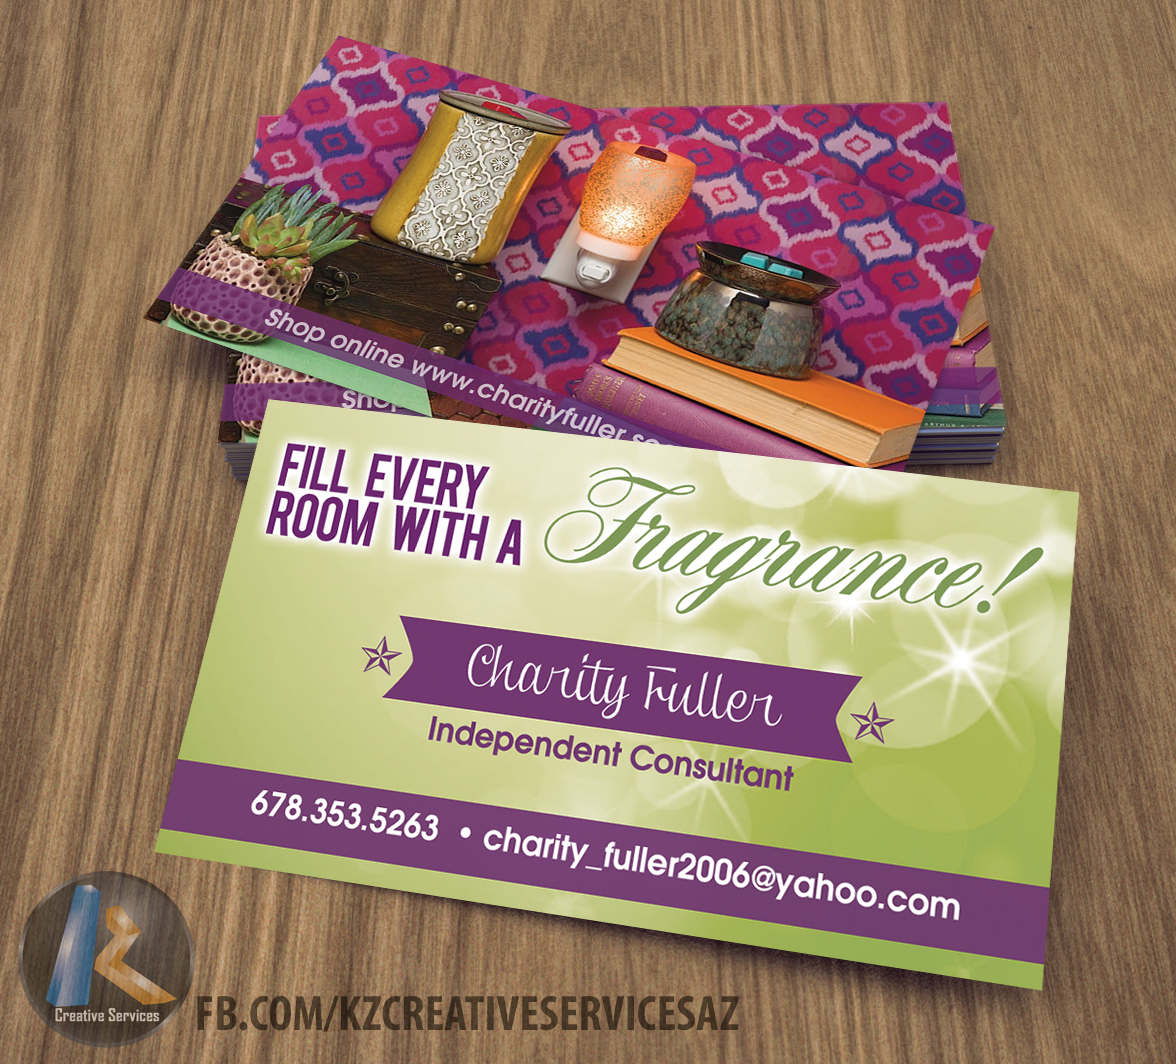 Scentsy business cards style 1 kz creative services online store scentsy business cards style 1 reheart